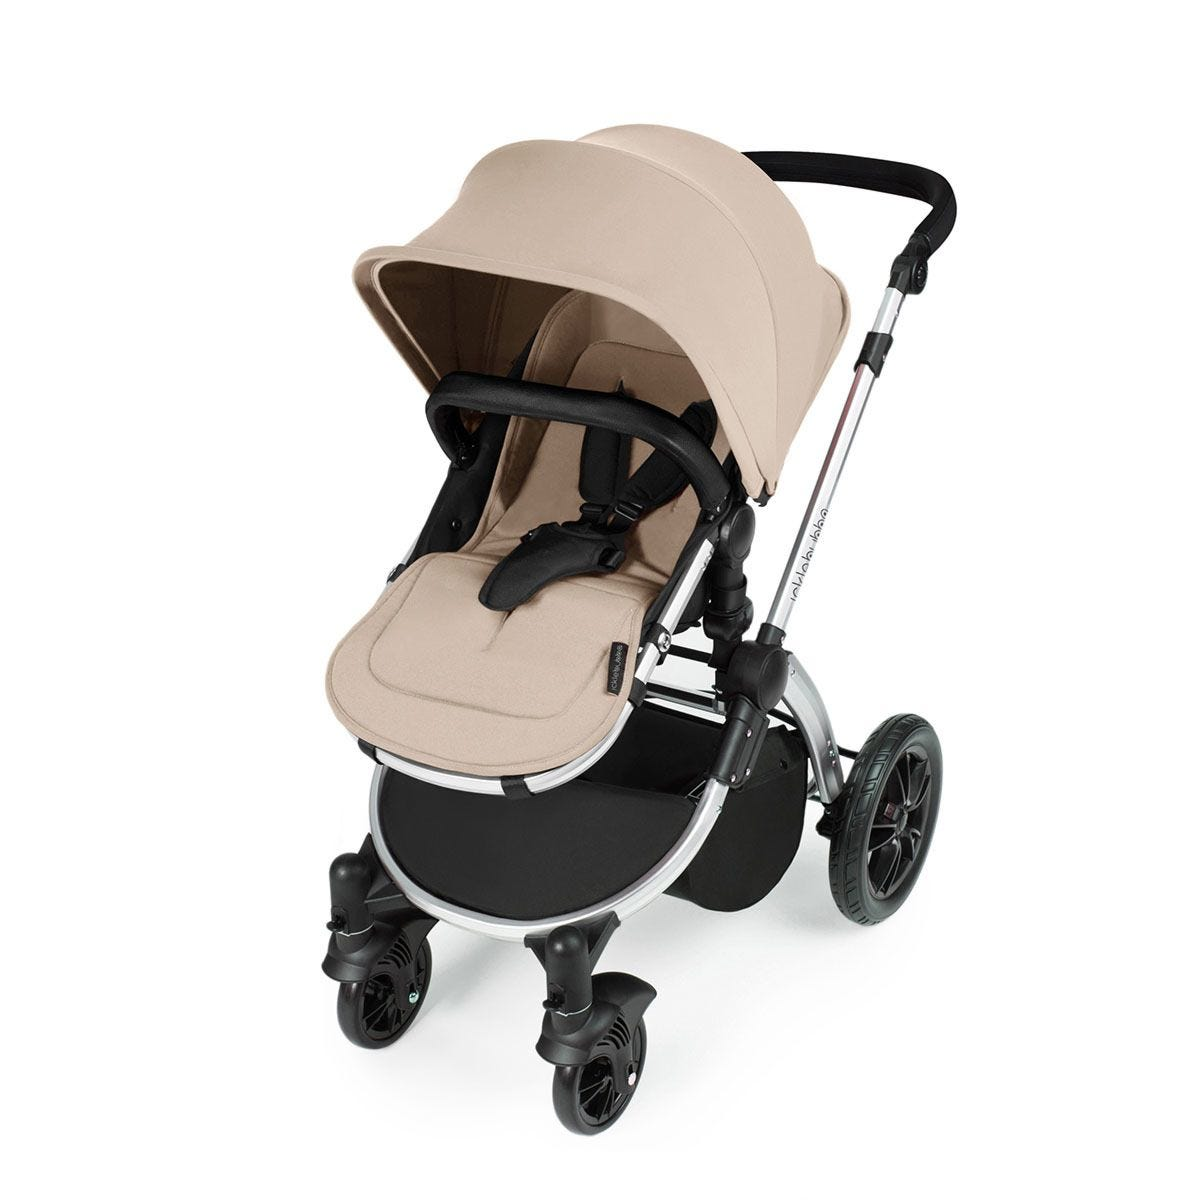 Ickle Bubba Stomp V3 i-Size Travel System with Isofix Base -Sand on Silver with Black Handles